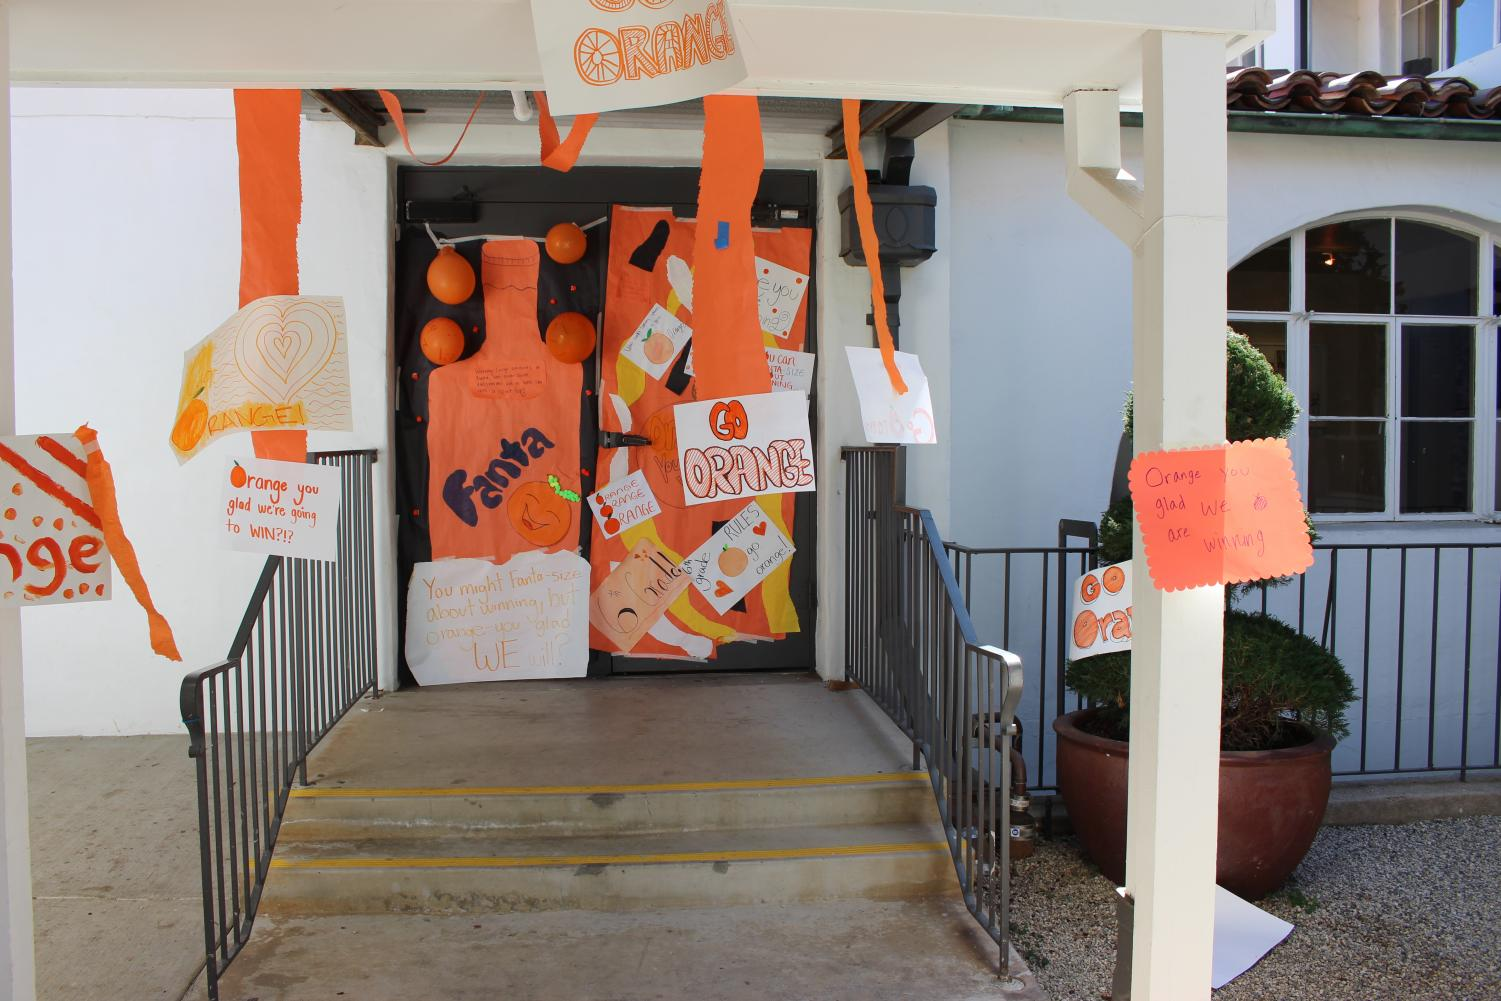 The+sixth+graders+decorated+their+door+with+orange.+They+are+currently+in+last+place+in+spirit+points+with+27+points+overall.+